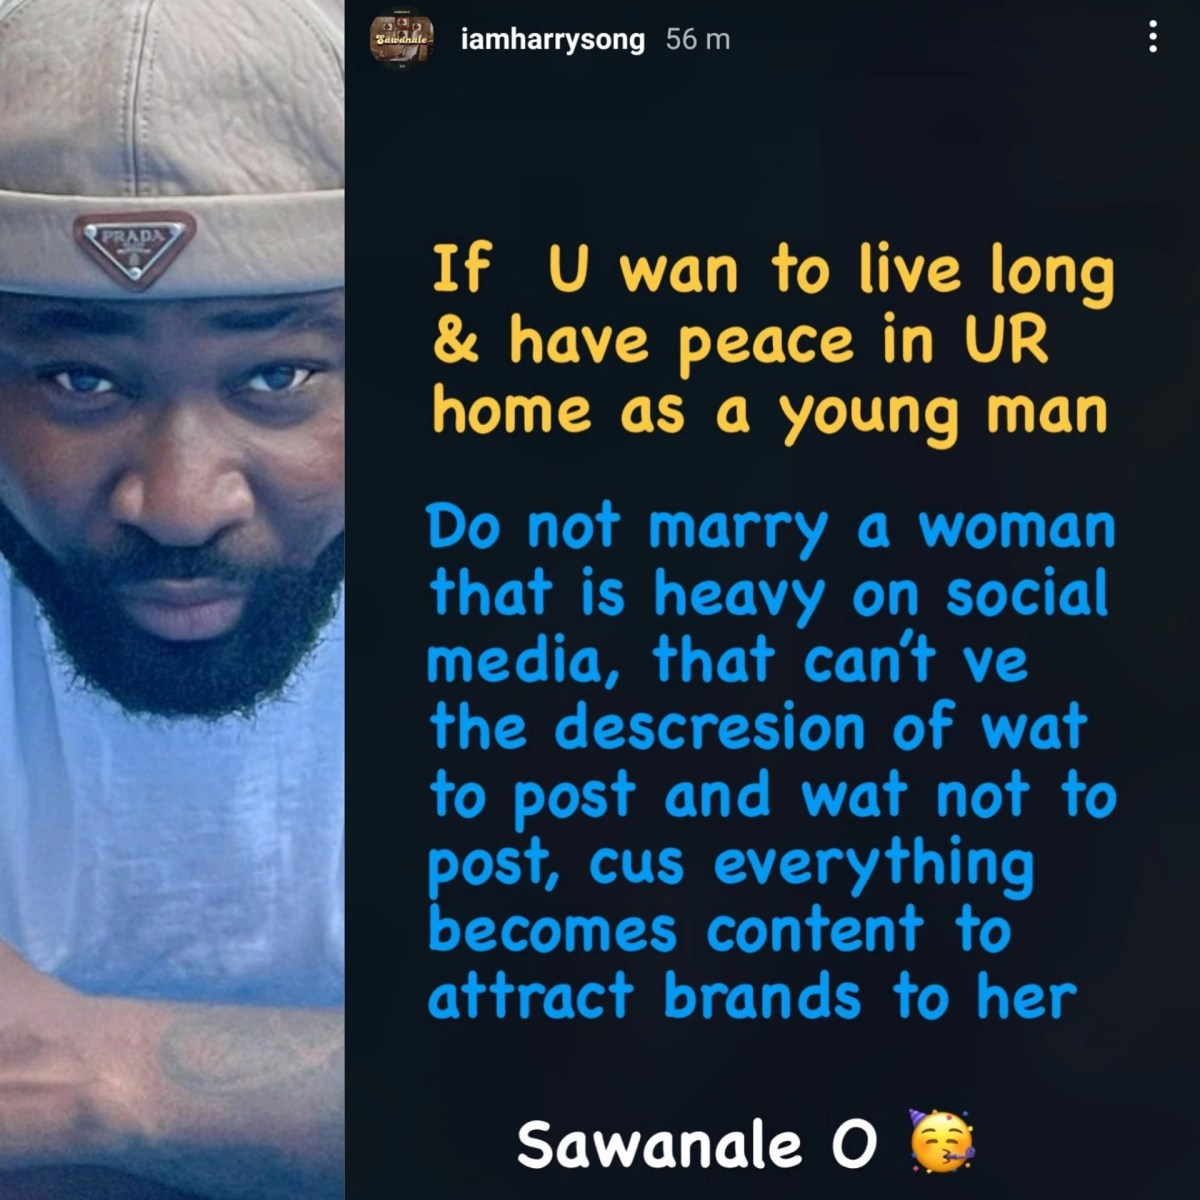 AnnieIdibia/2face: Do not marry a woman that is heavy on social media- Singer HarrySong advises young men